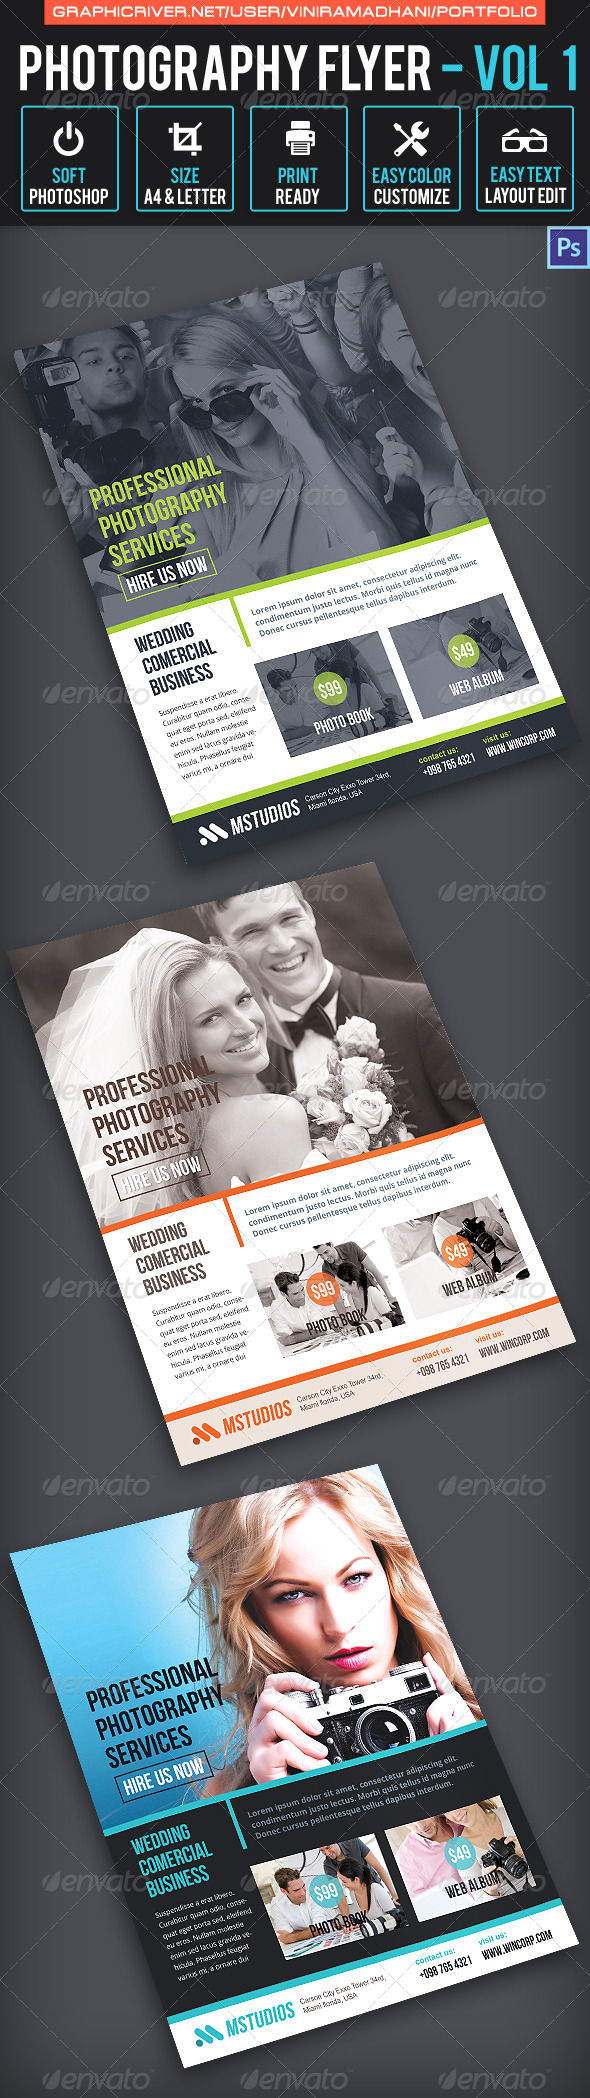 GraphicRiver Photography Flyer Volume 1 6535951